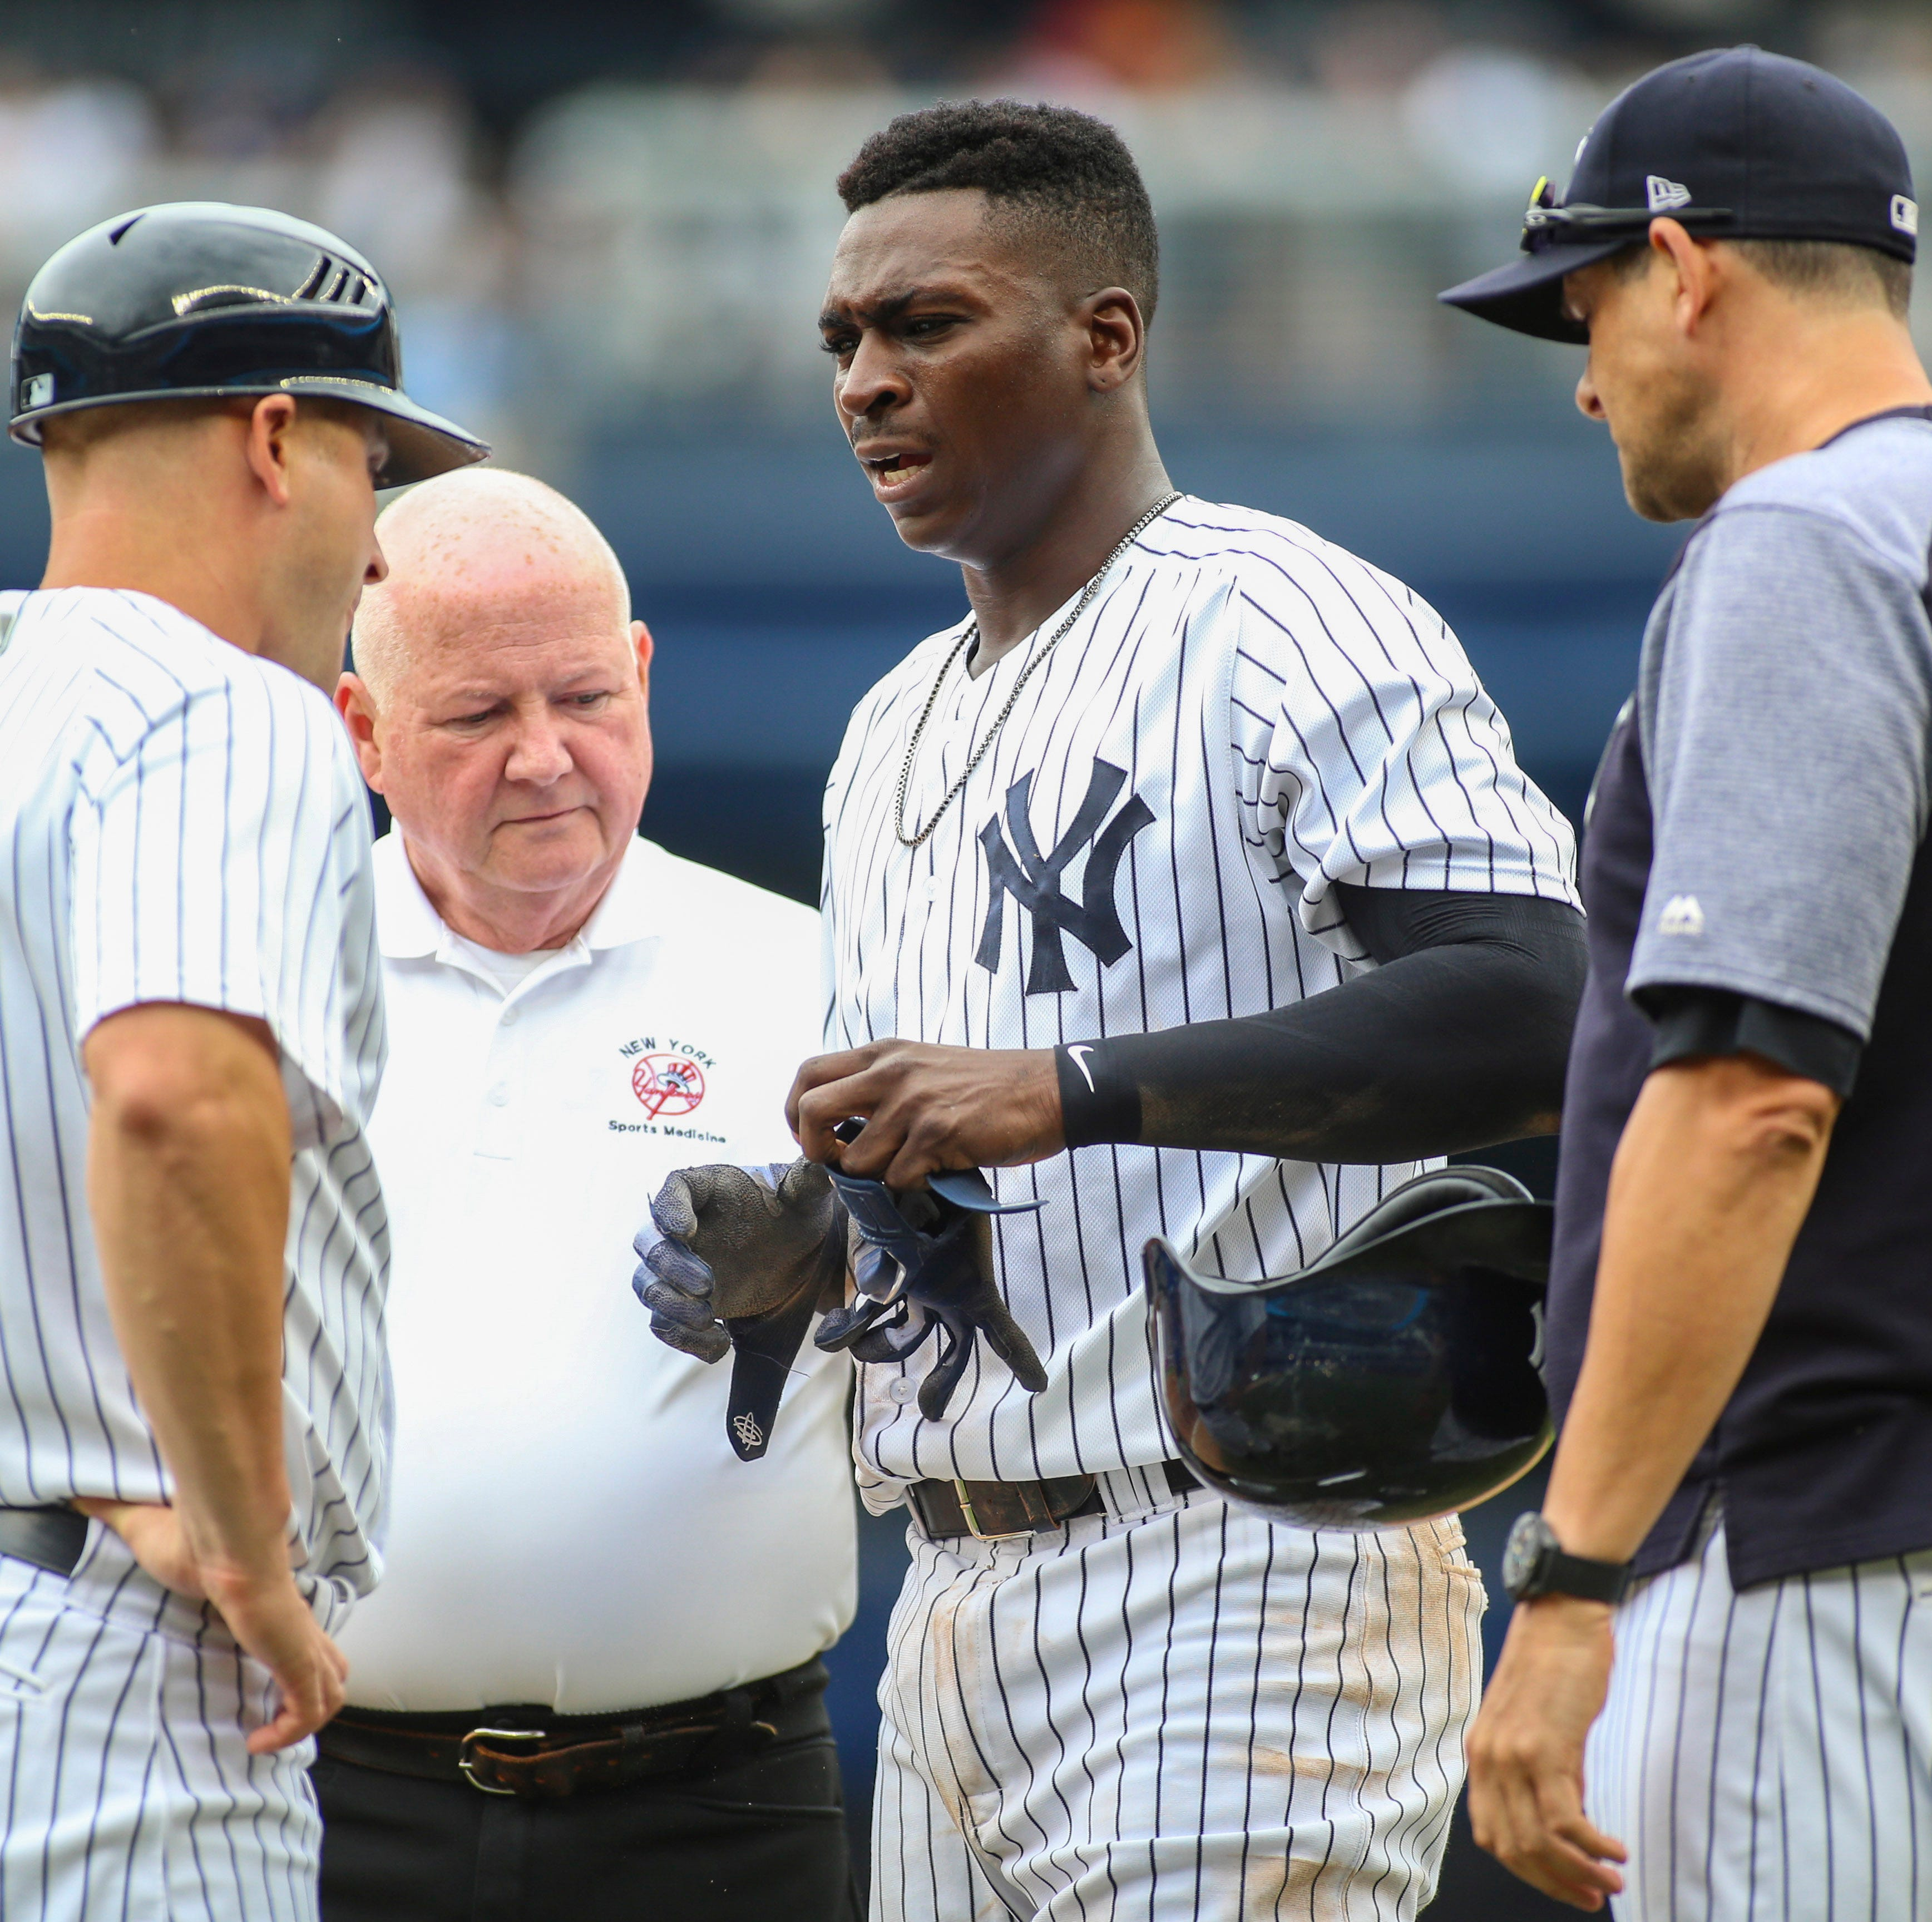 NY Yankees Didi Gregorius tears cartilage, status unknown